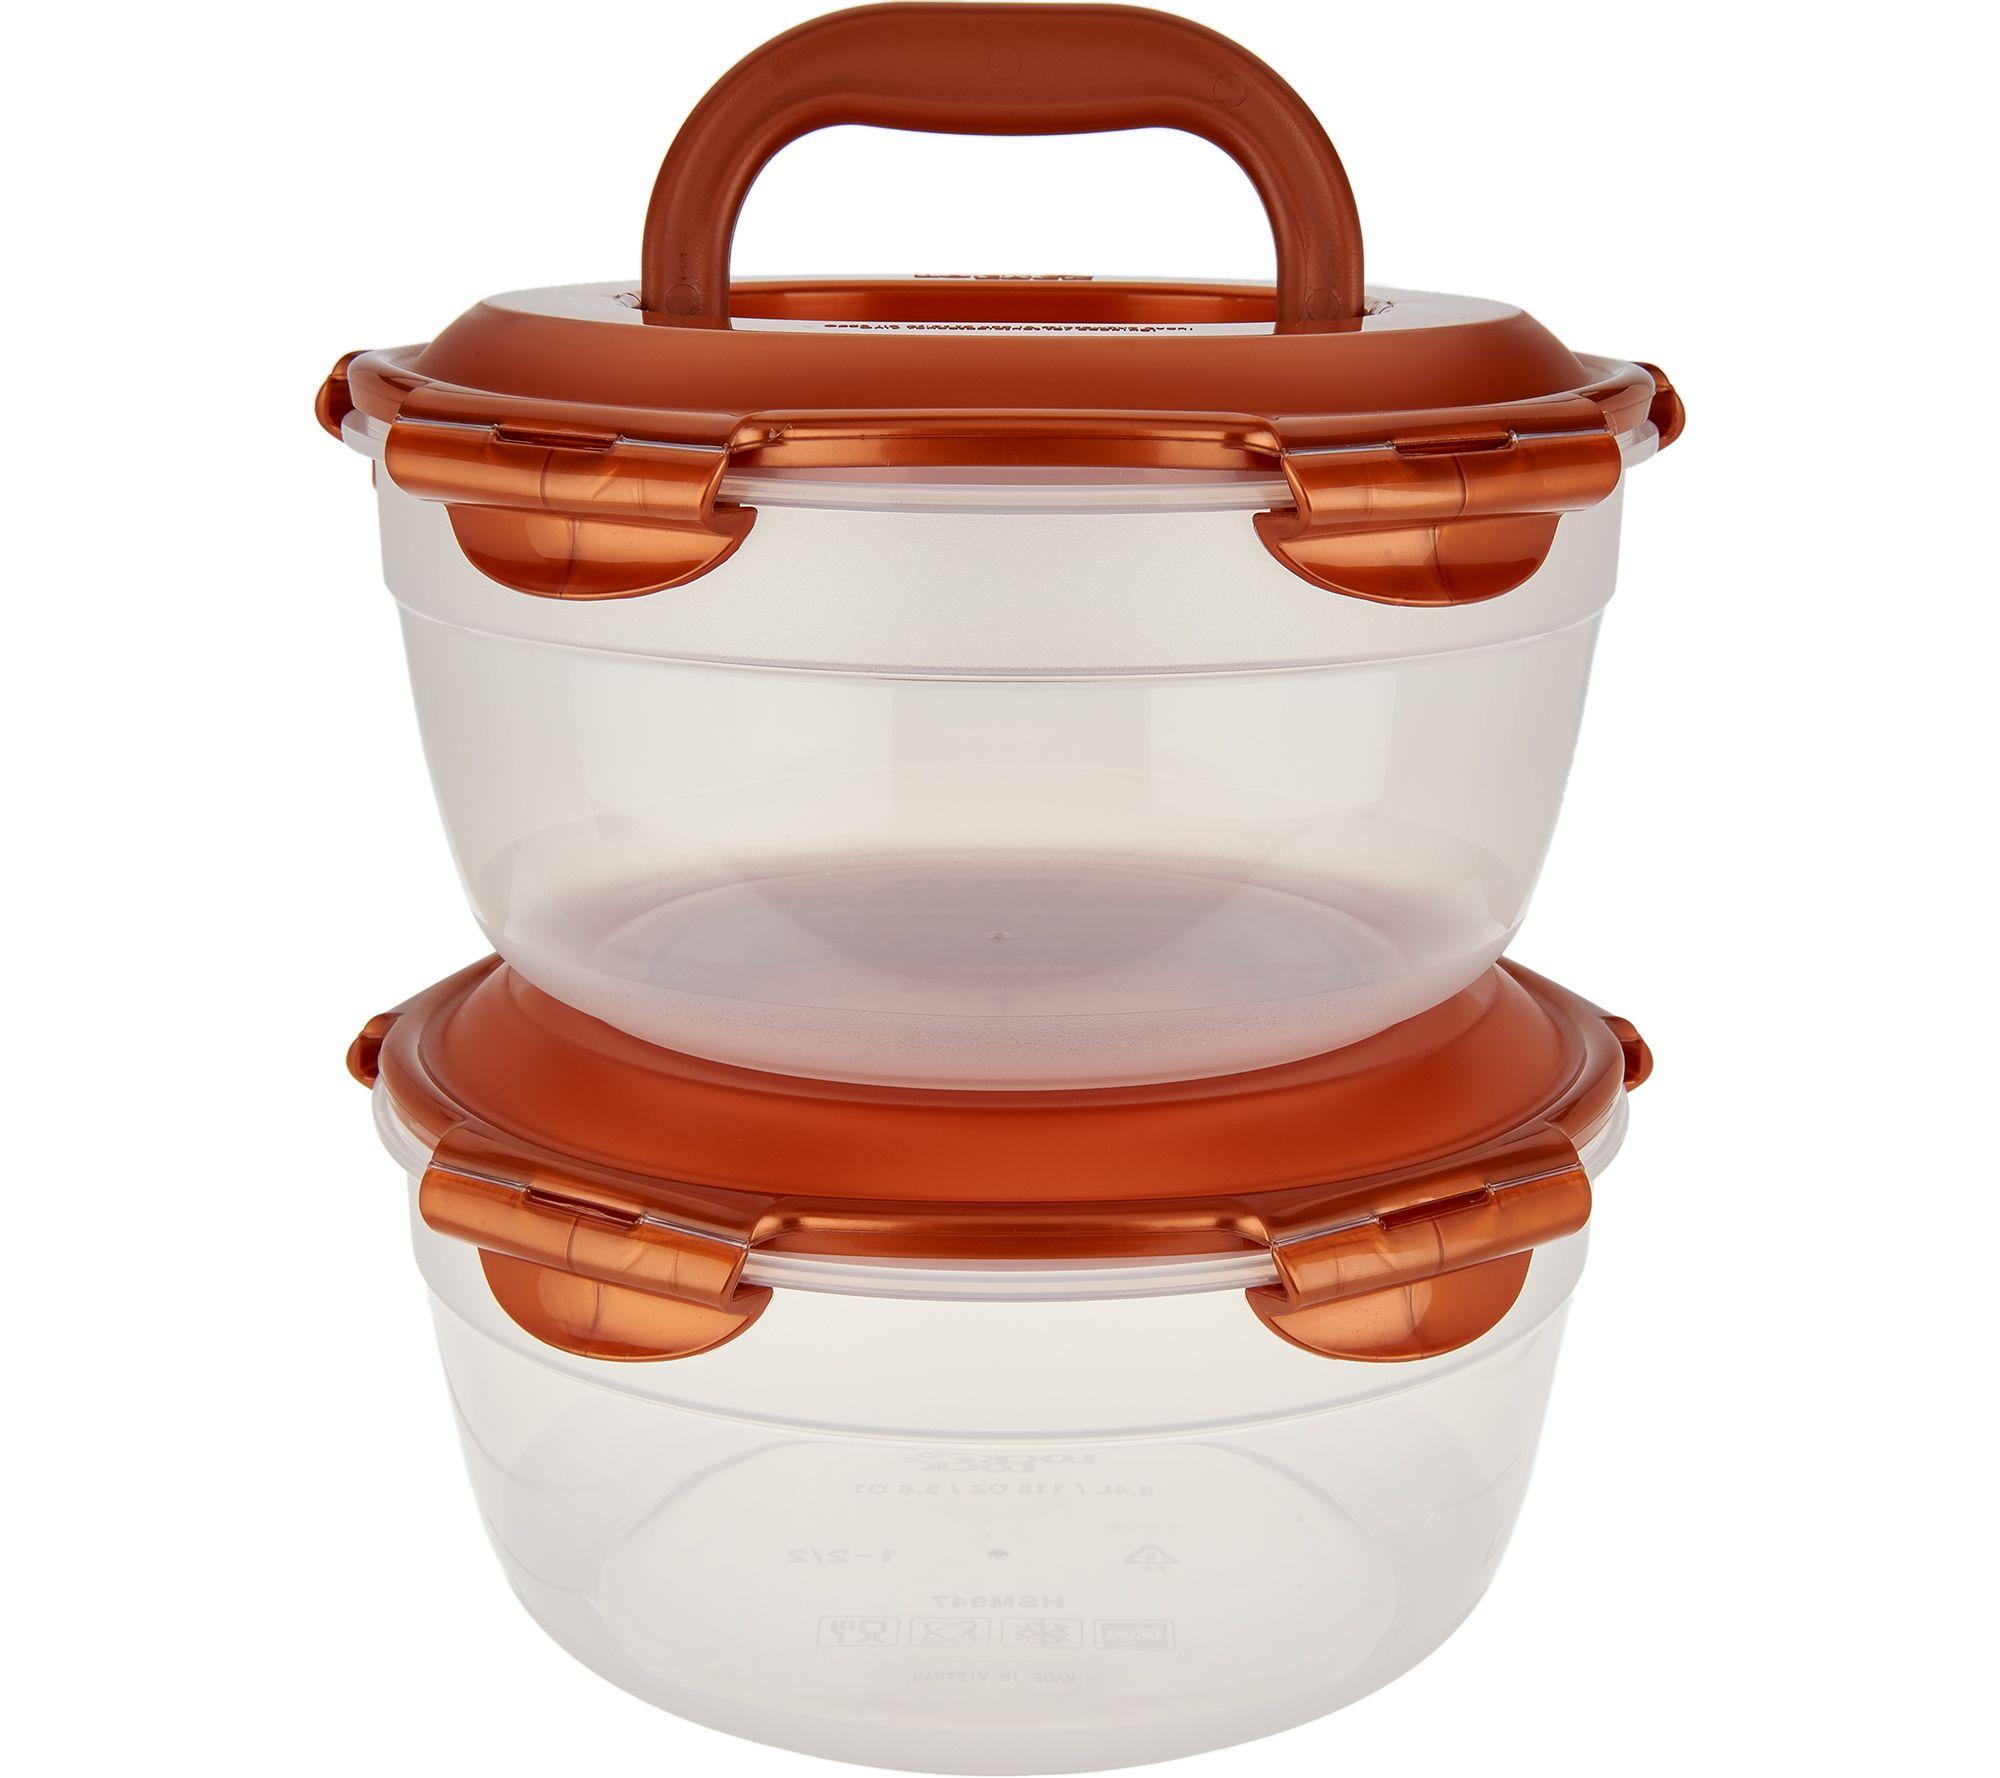 Lock & Lock 2 piece Bowl Storage Set with Handle - K46157